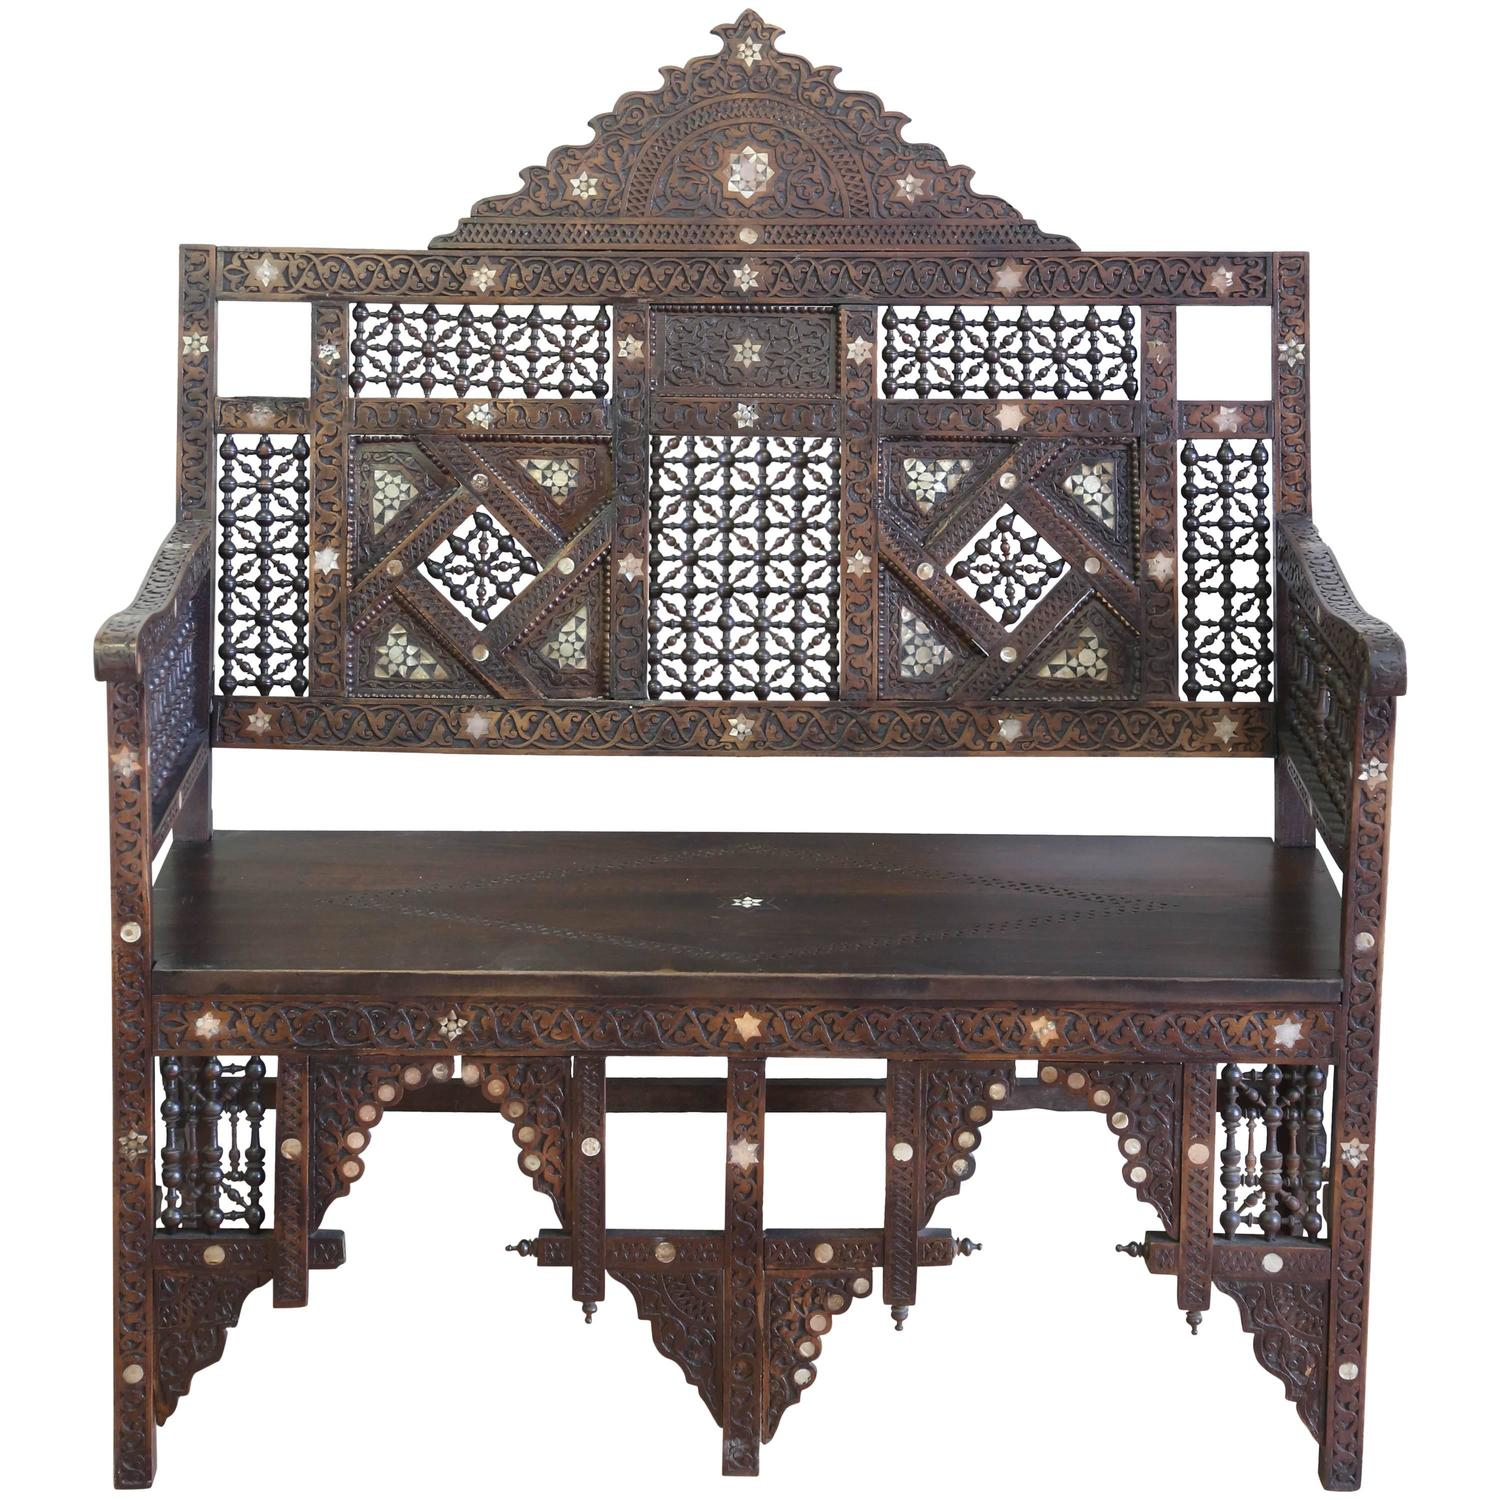 A Syrian Mother Of Pearl Bench Available To Purchase At: 19th Century Syrian Carved Inlaid Bench For Sale At 1stdibs